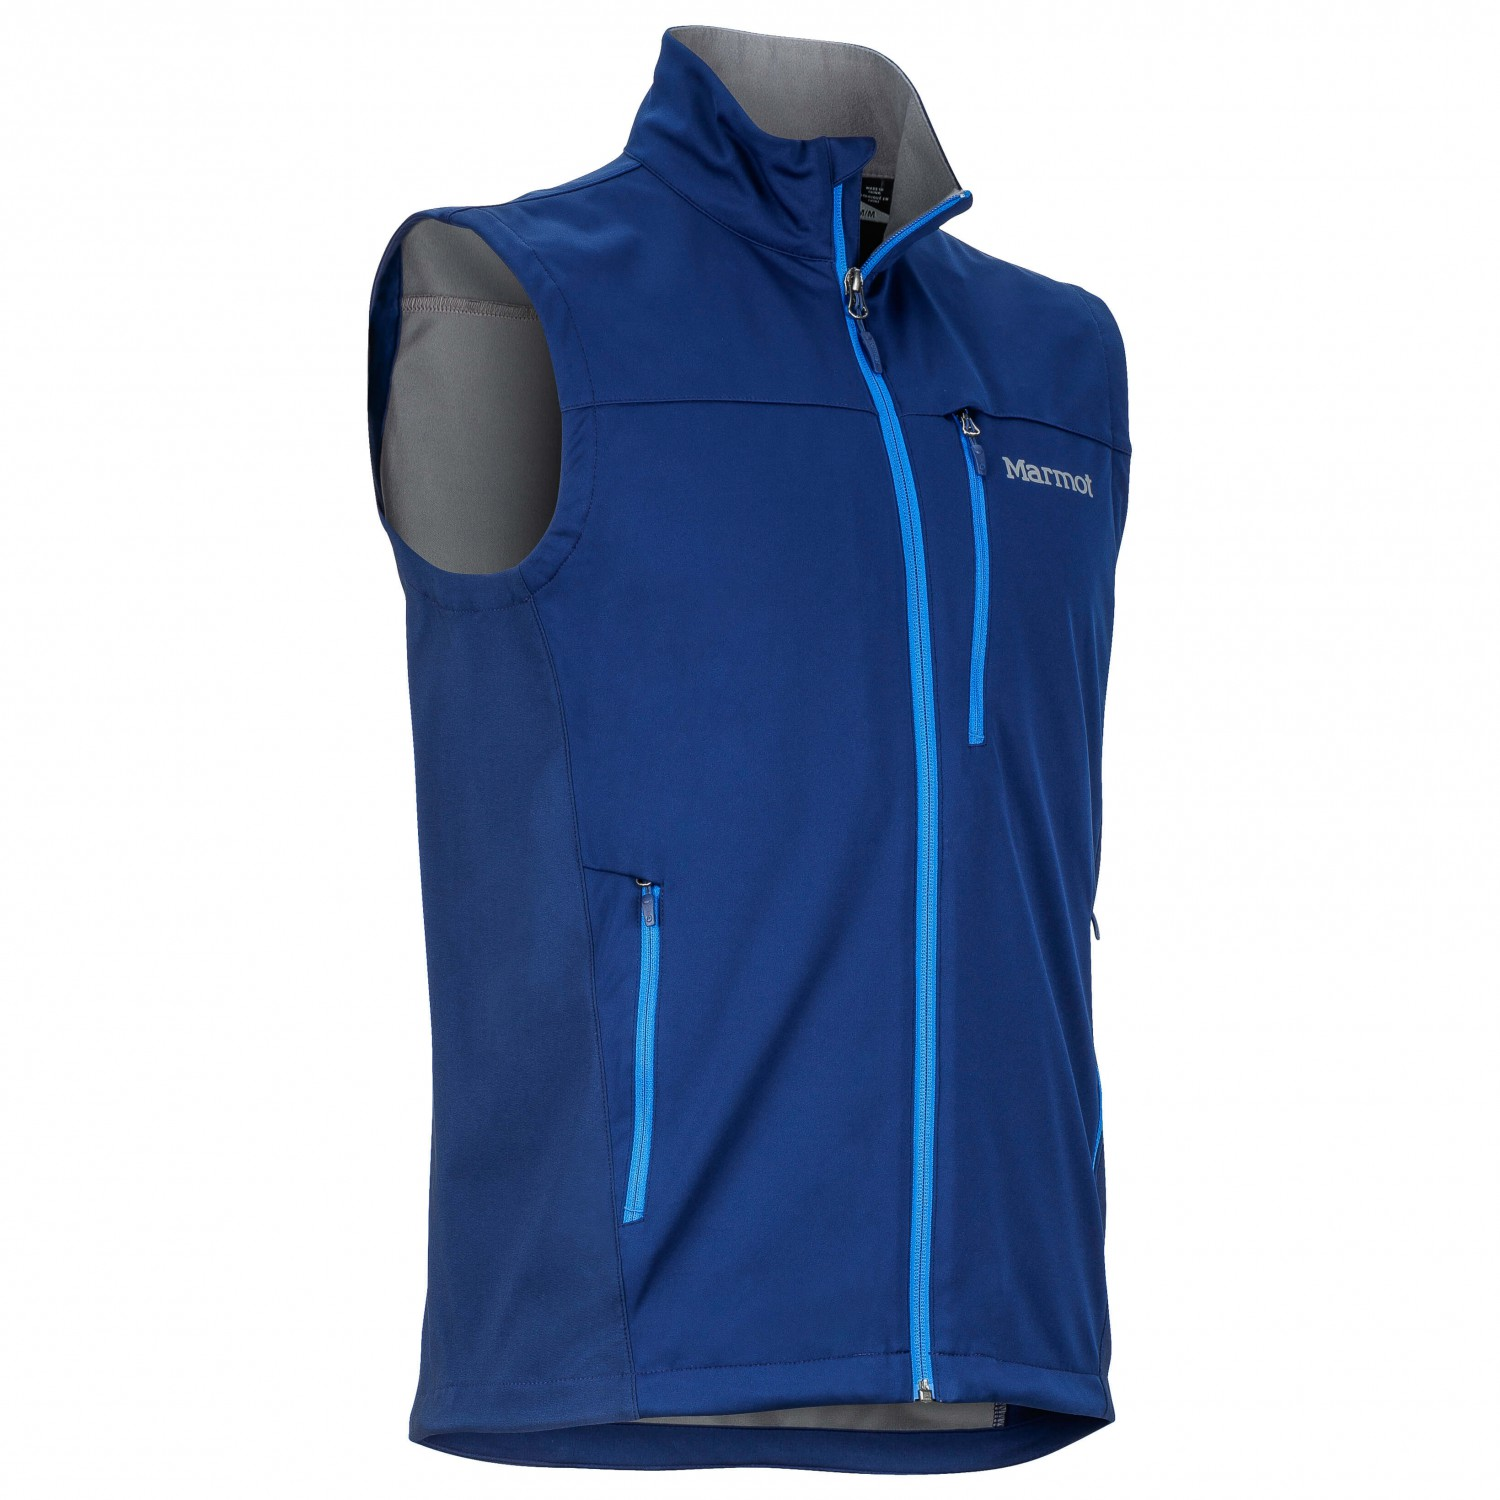 Marmot Leadville Vest - Softshell Vest Men's | Buy online | Alpinetrek.co.uk